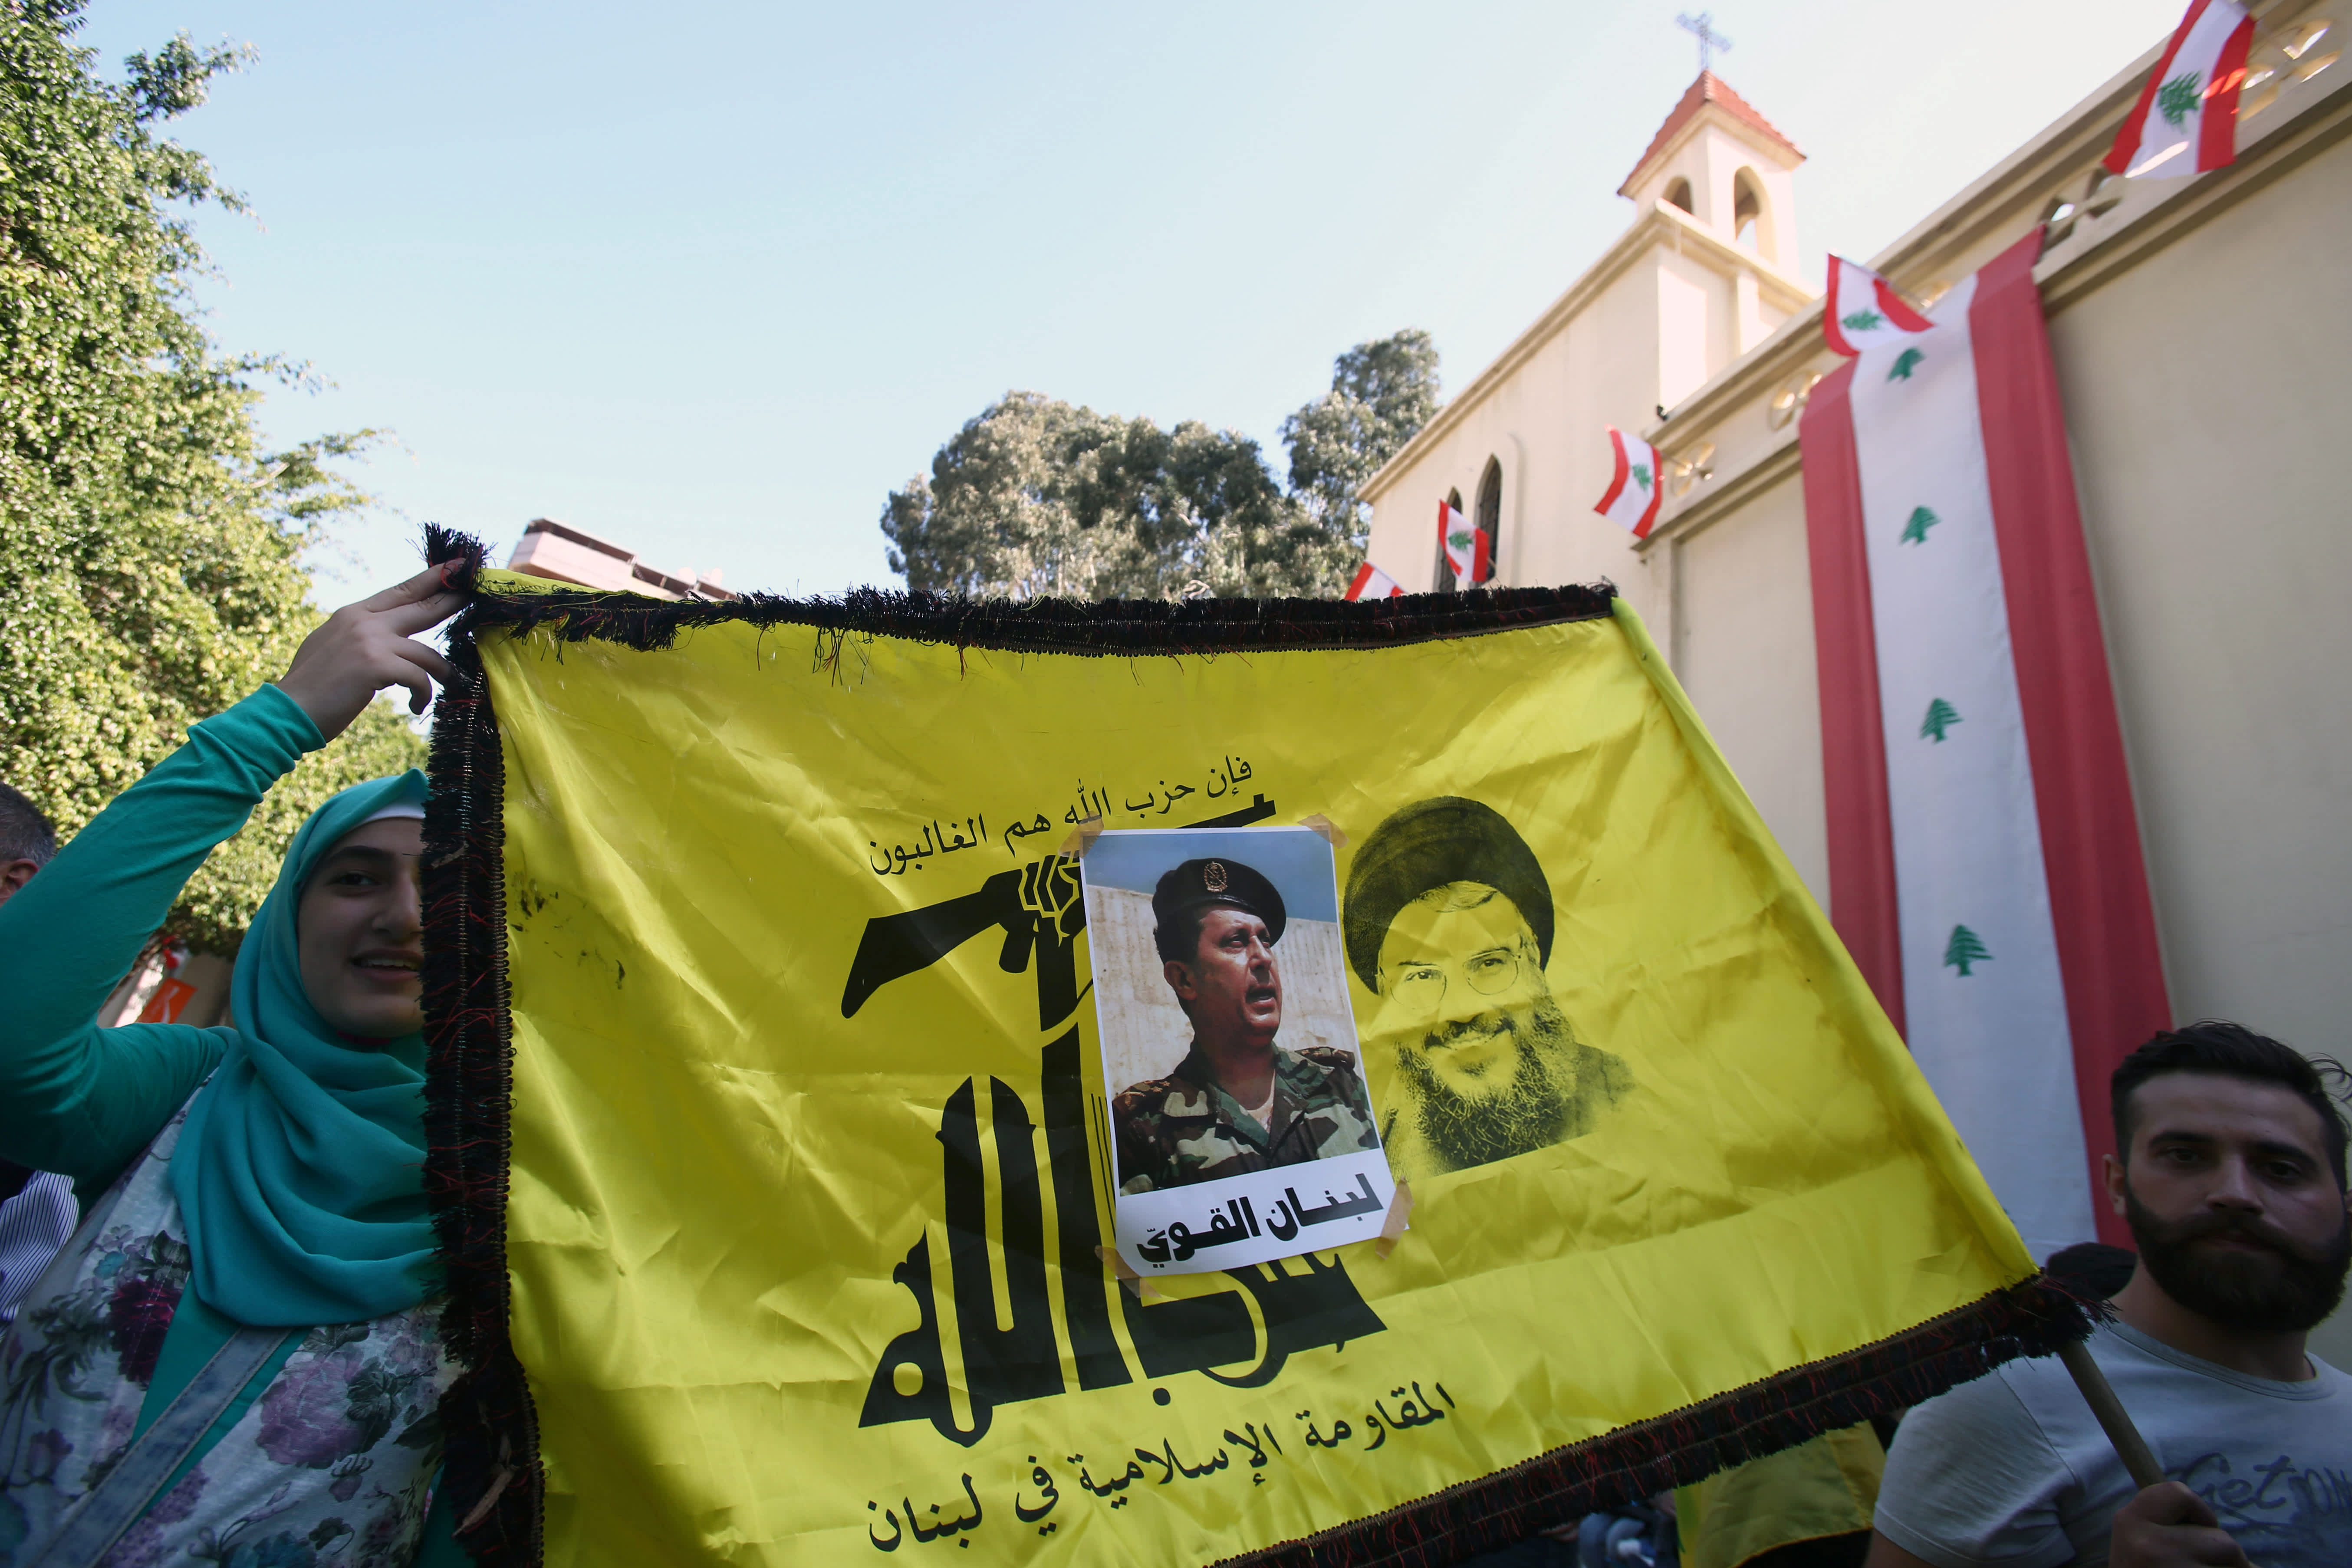 People carry a Hezbollah flag with a picture of newly appointed Lebanese President Michel Aoun stuck on it, in the Haret Hreik area, southern suburbs of Beirut, Lebanon October 31, 2016. (Reuters)